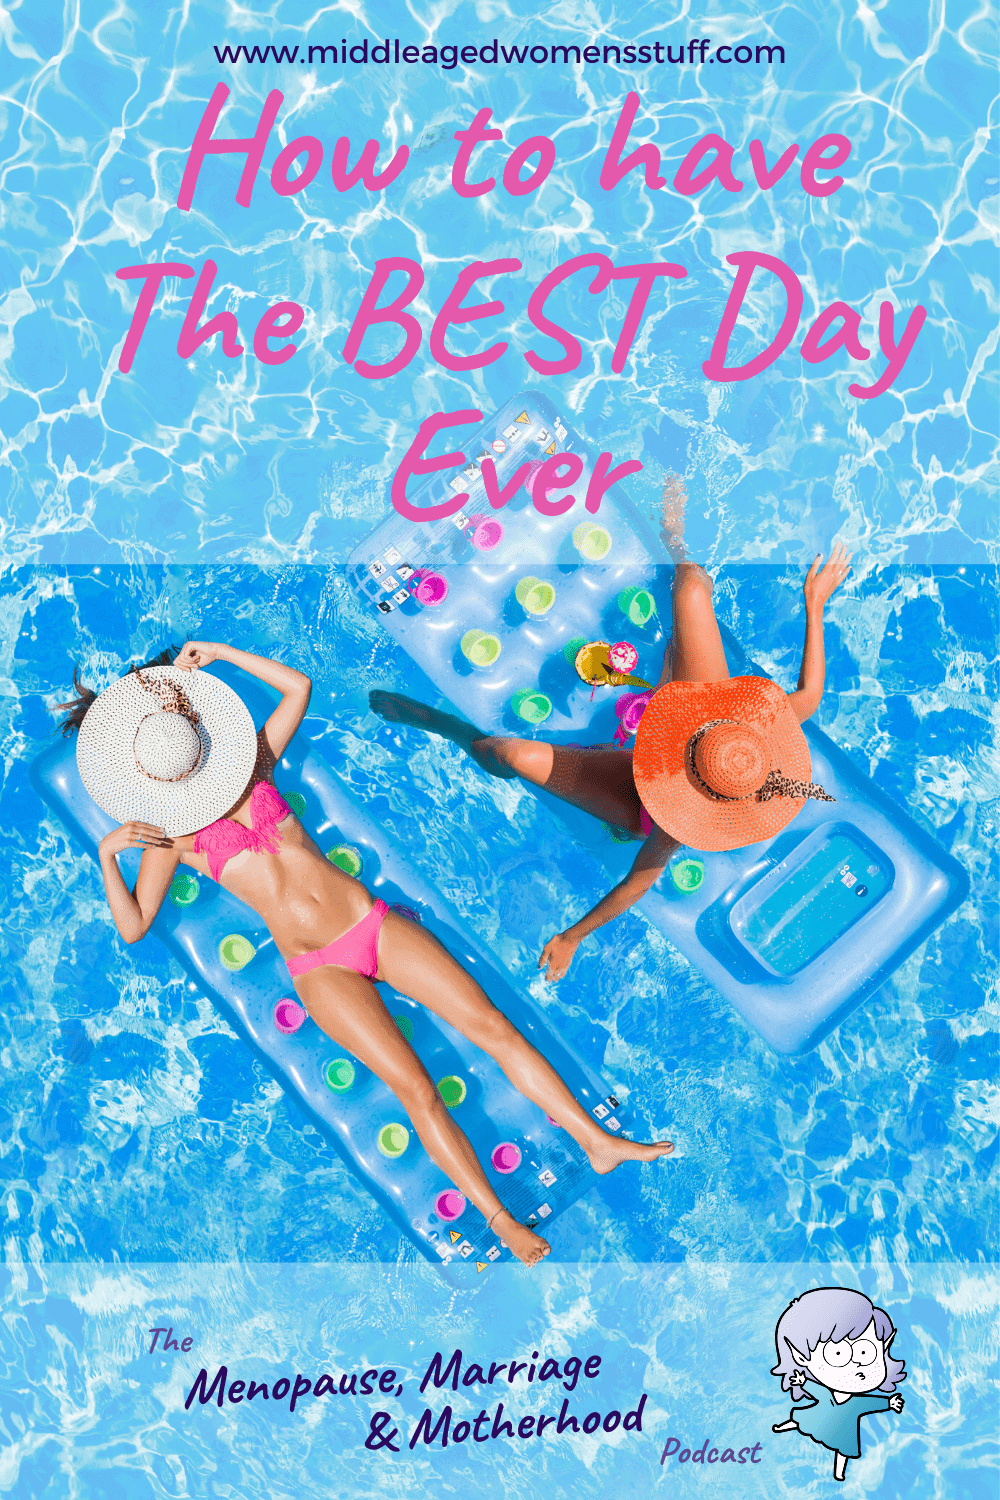 Episode 2: How To Have The Best Day Ever